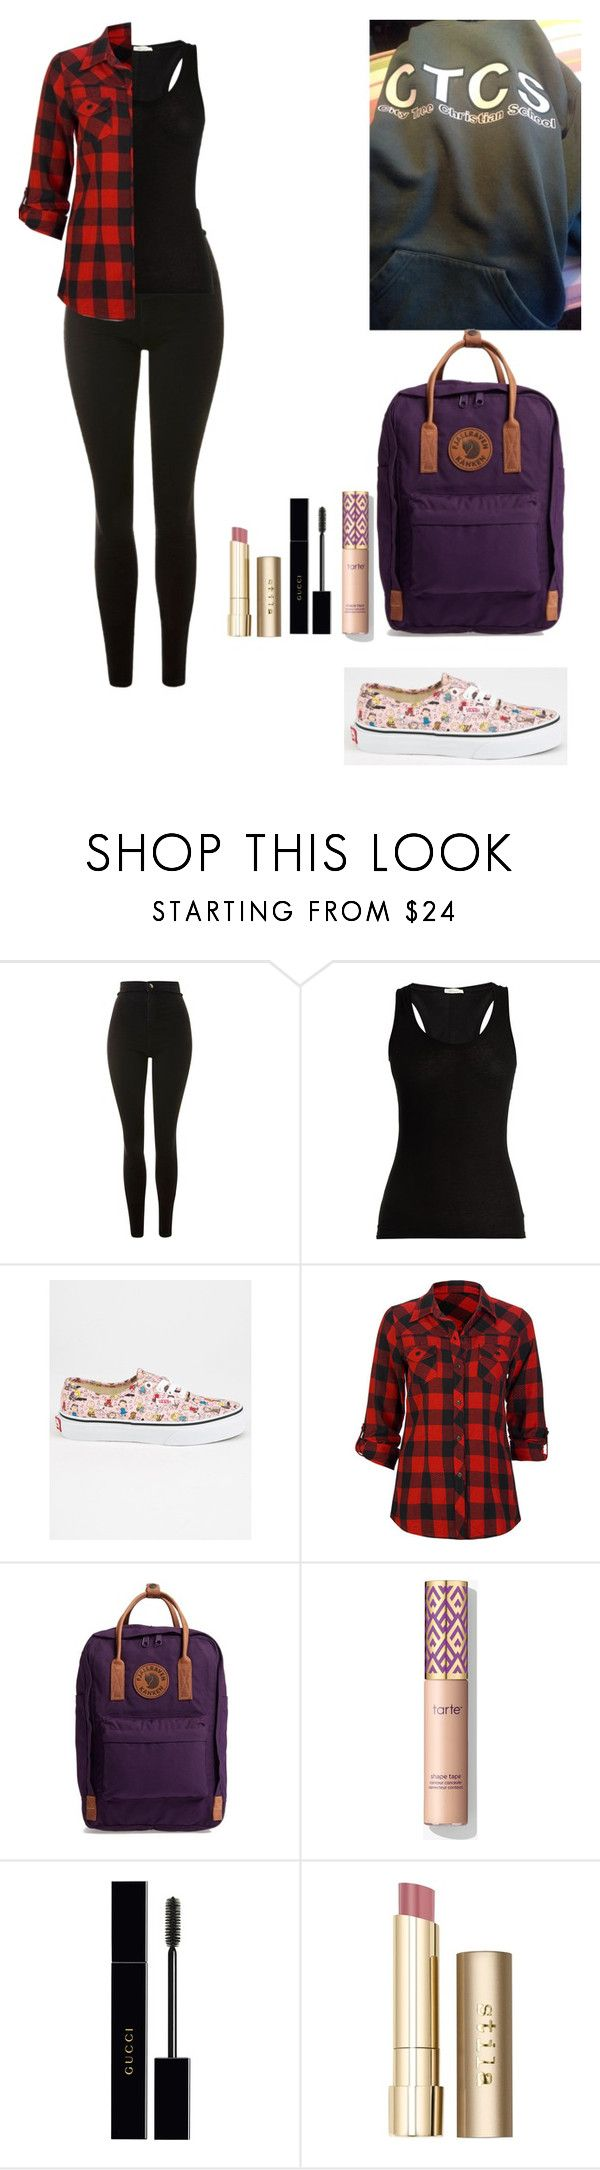 """""""Friday School Outfit"""" by londonblossom ❤ liked on Polyvore featuring Topshop, Skin, Vans, Full Tilt, Fjällräven, Gucci and Stila"""